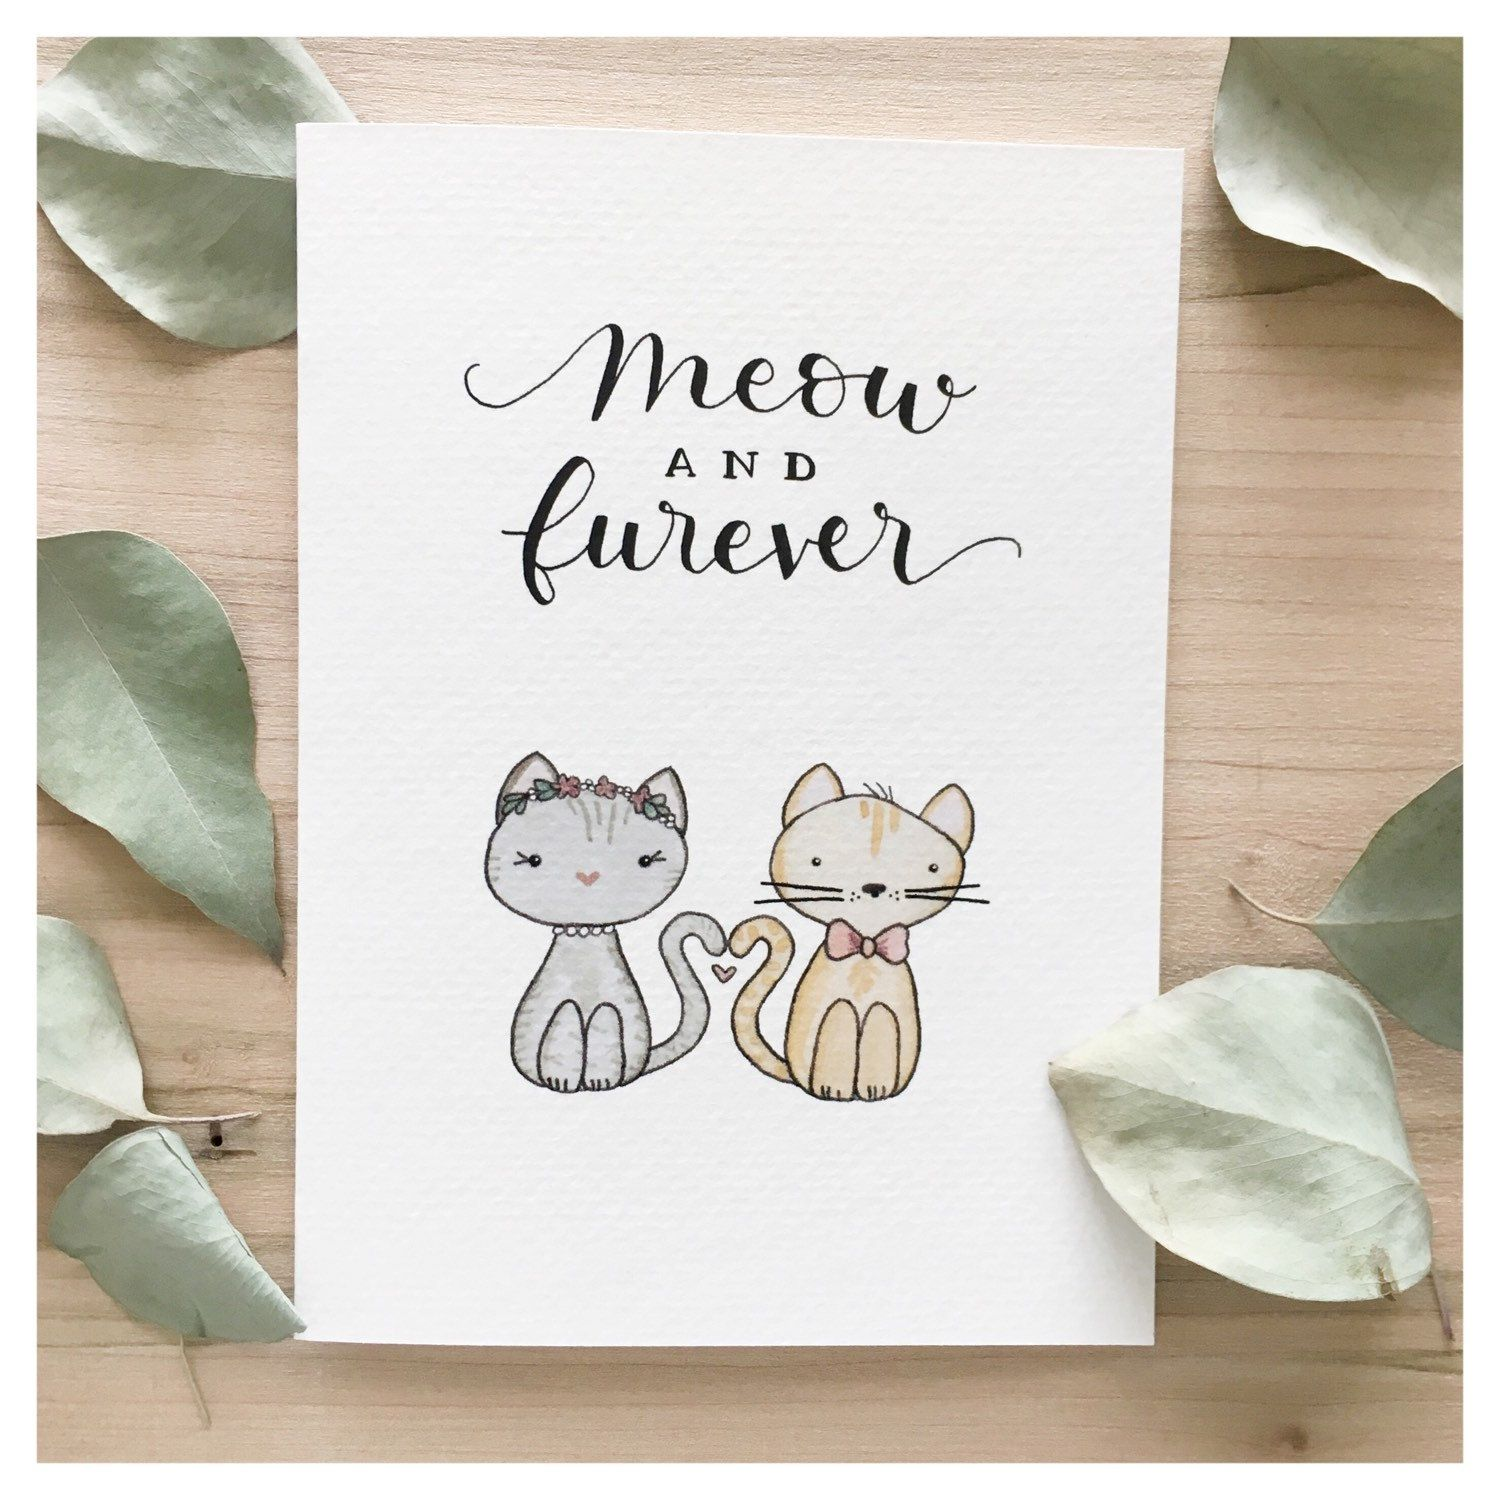 Funny Wedding Card Cute Wedding Card Funny Cute Engagement Card